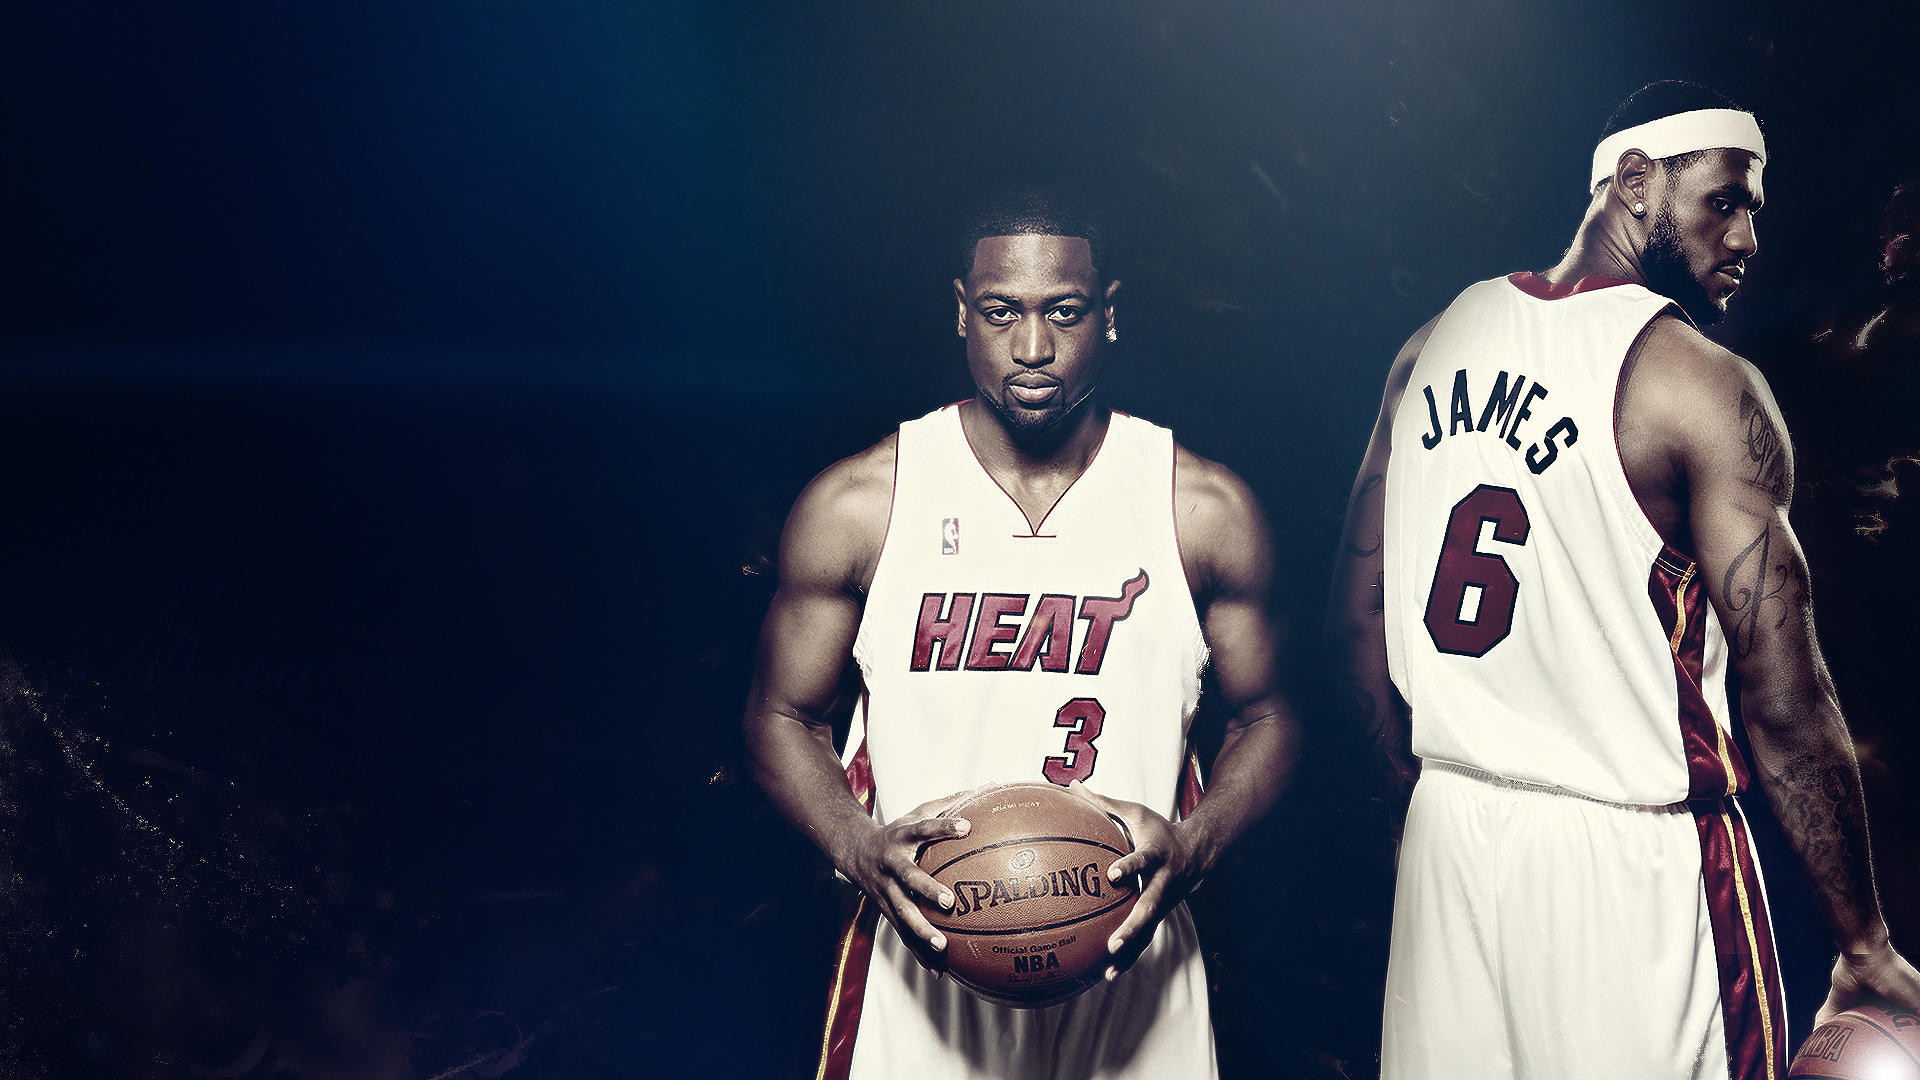 wallpaper miami heat, lebron james, dwyane wade desktop picture & hd